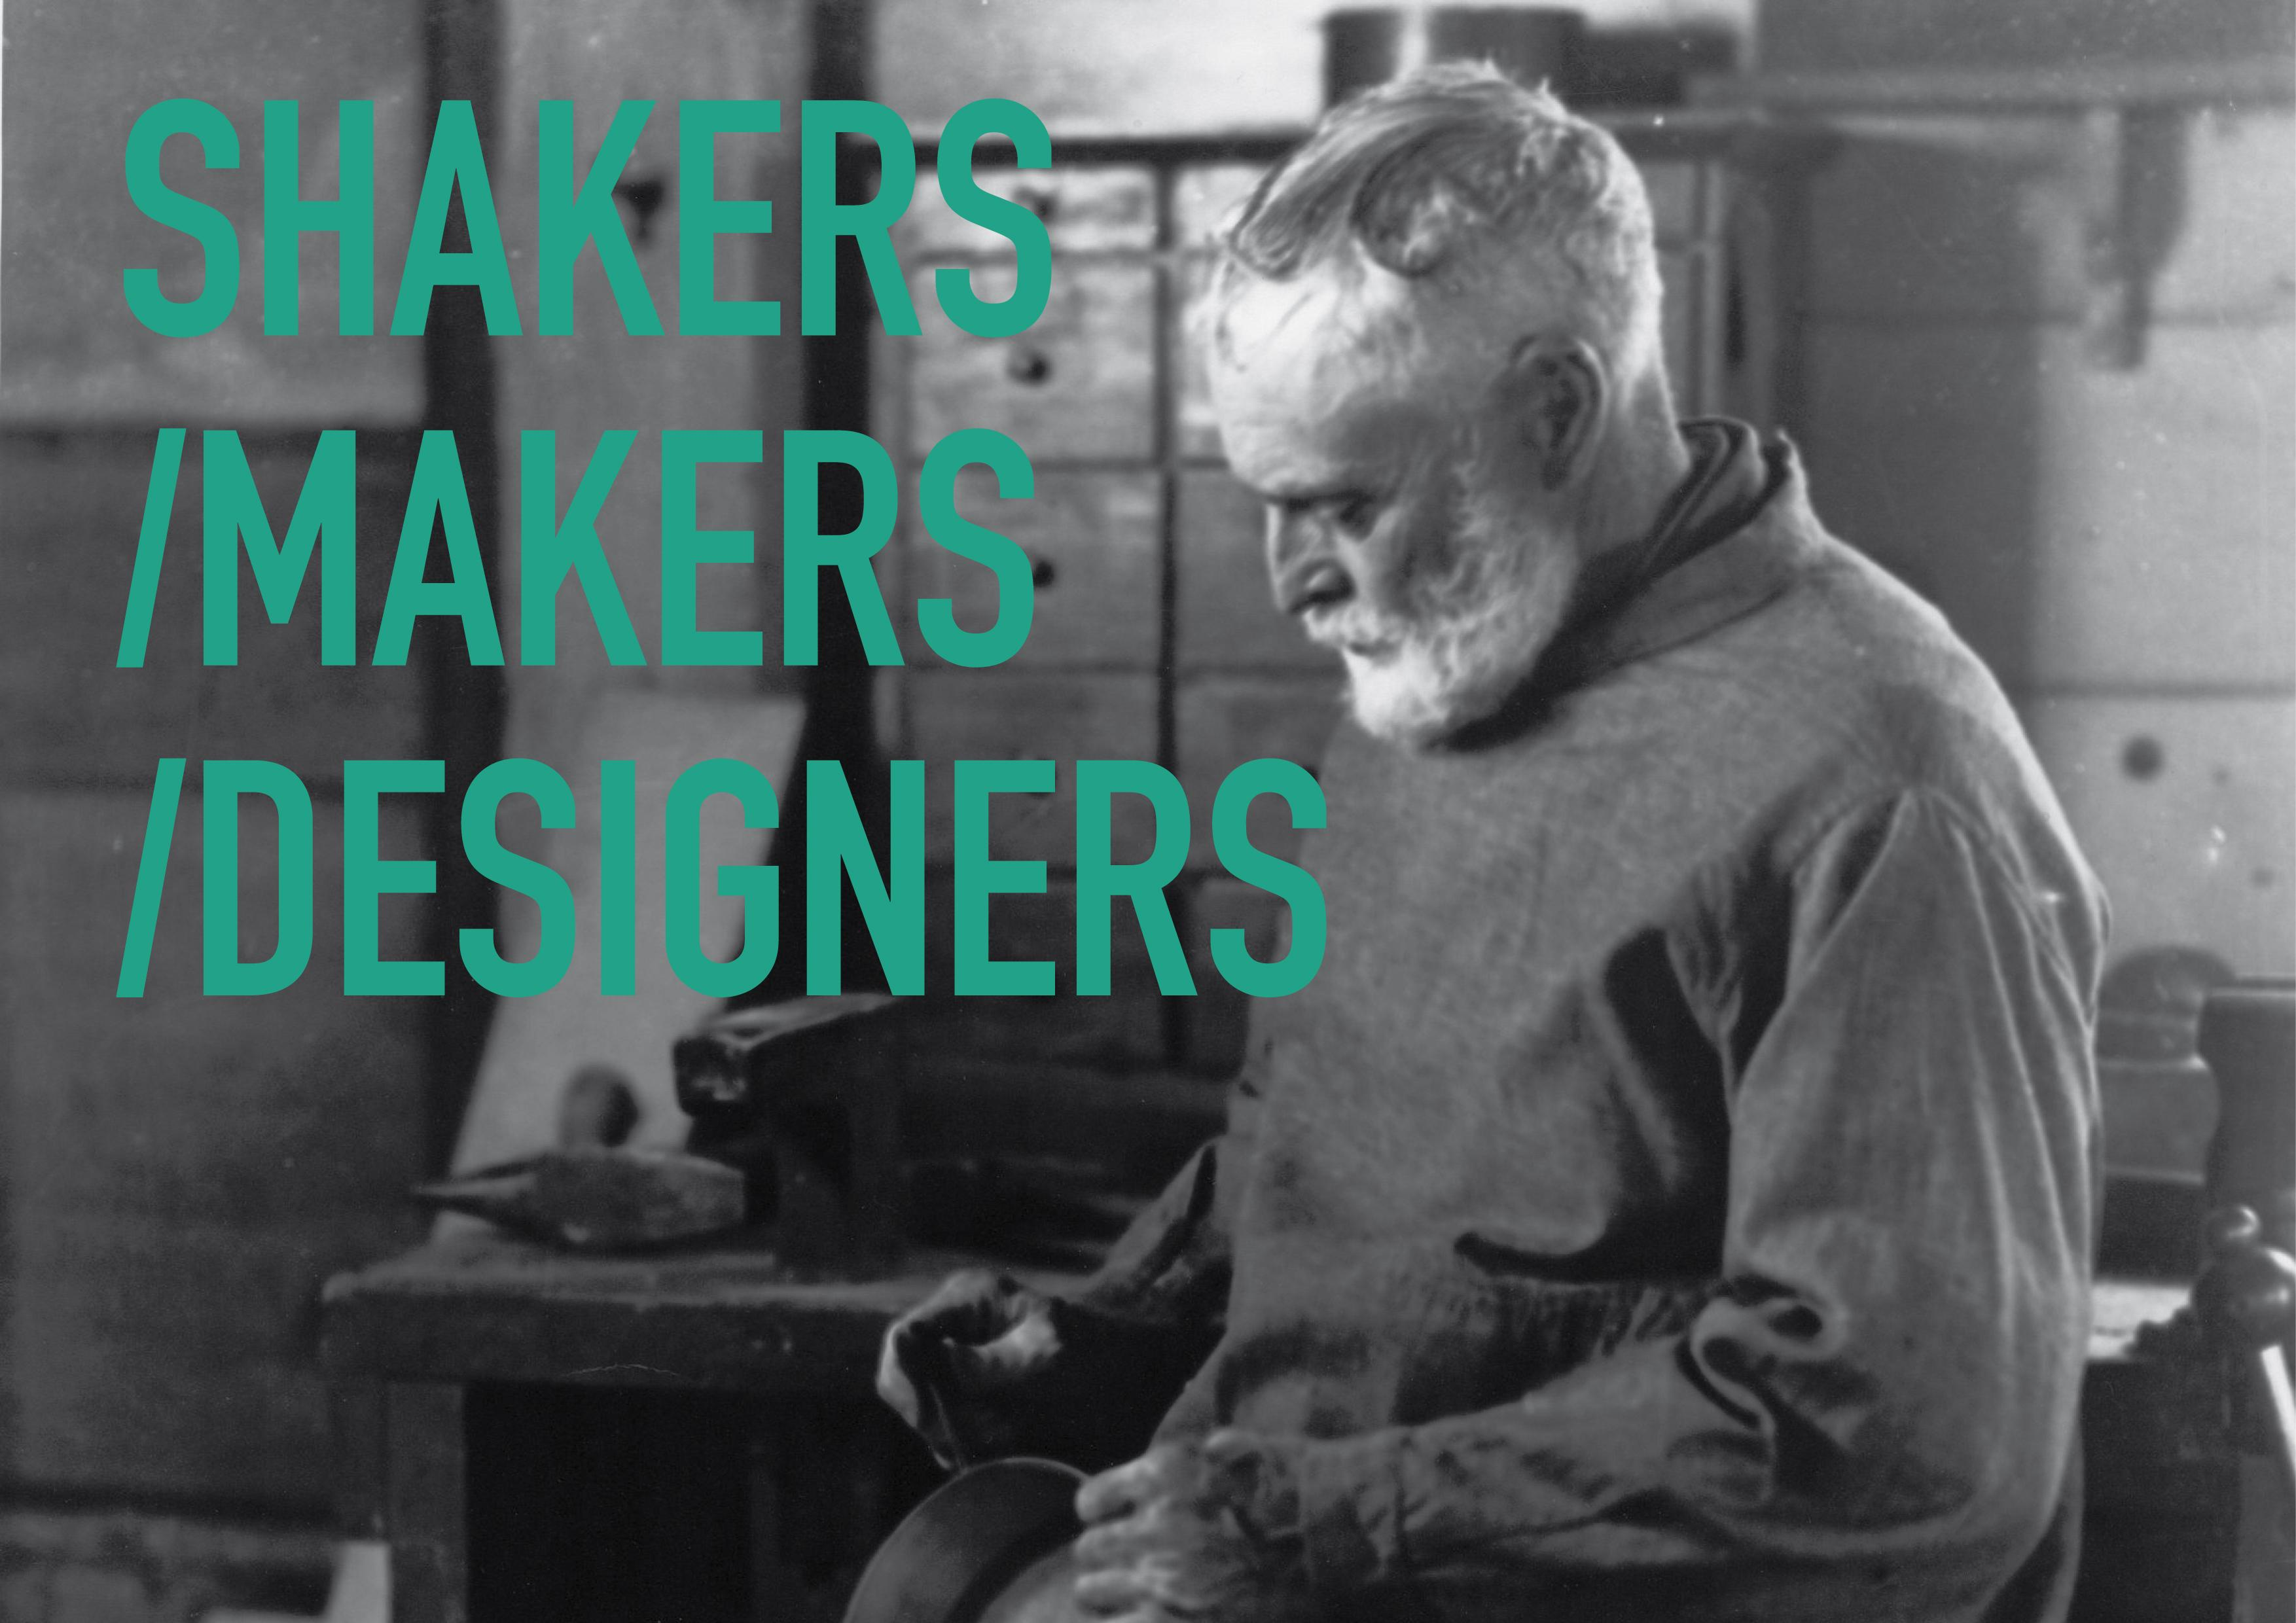 SHAKERS / MAKERS / DESIGNERS